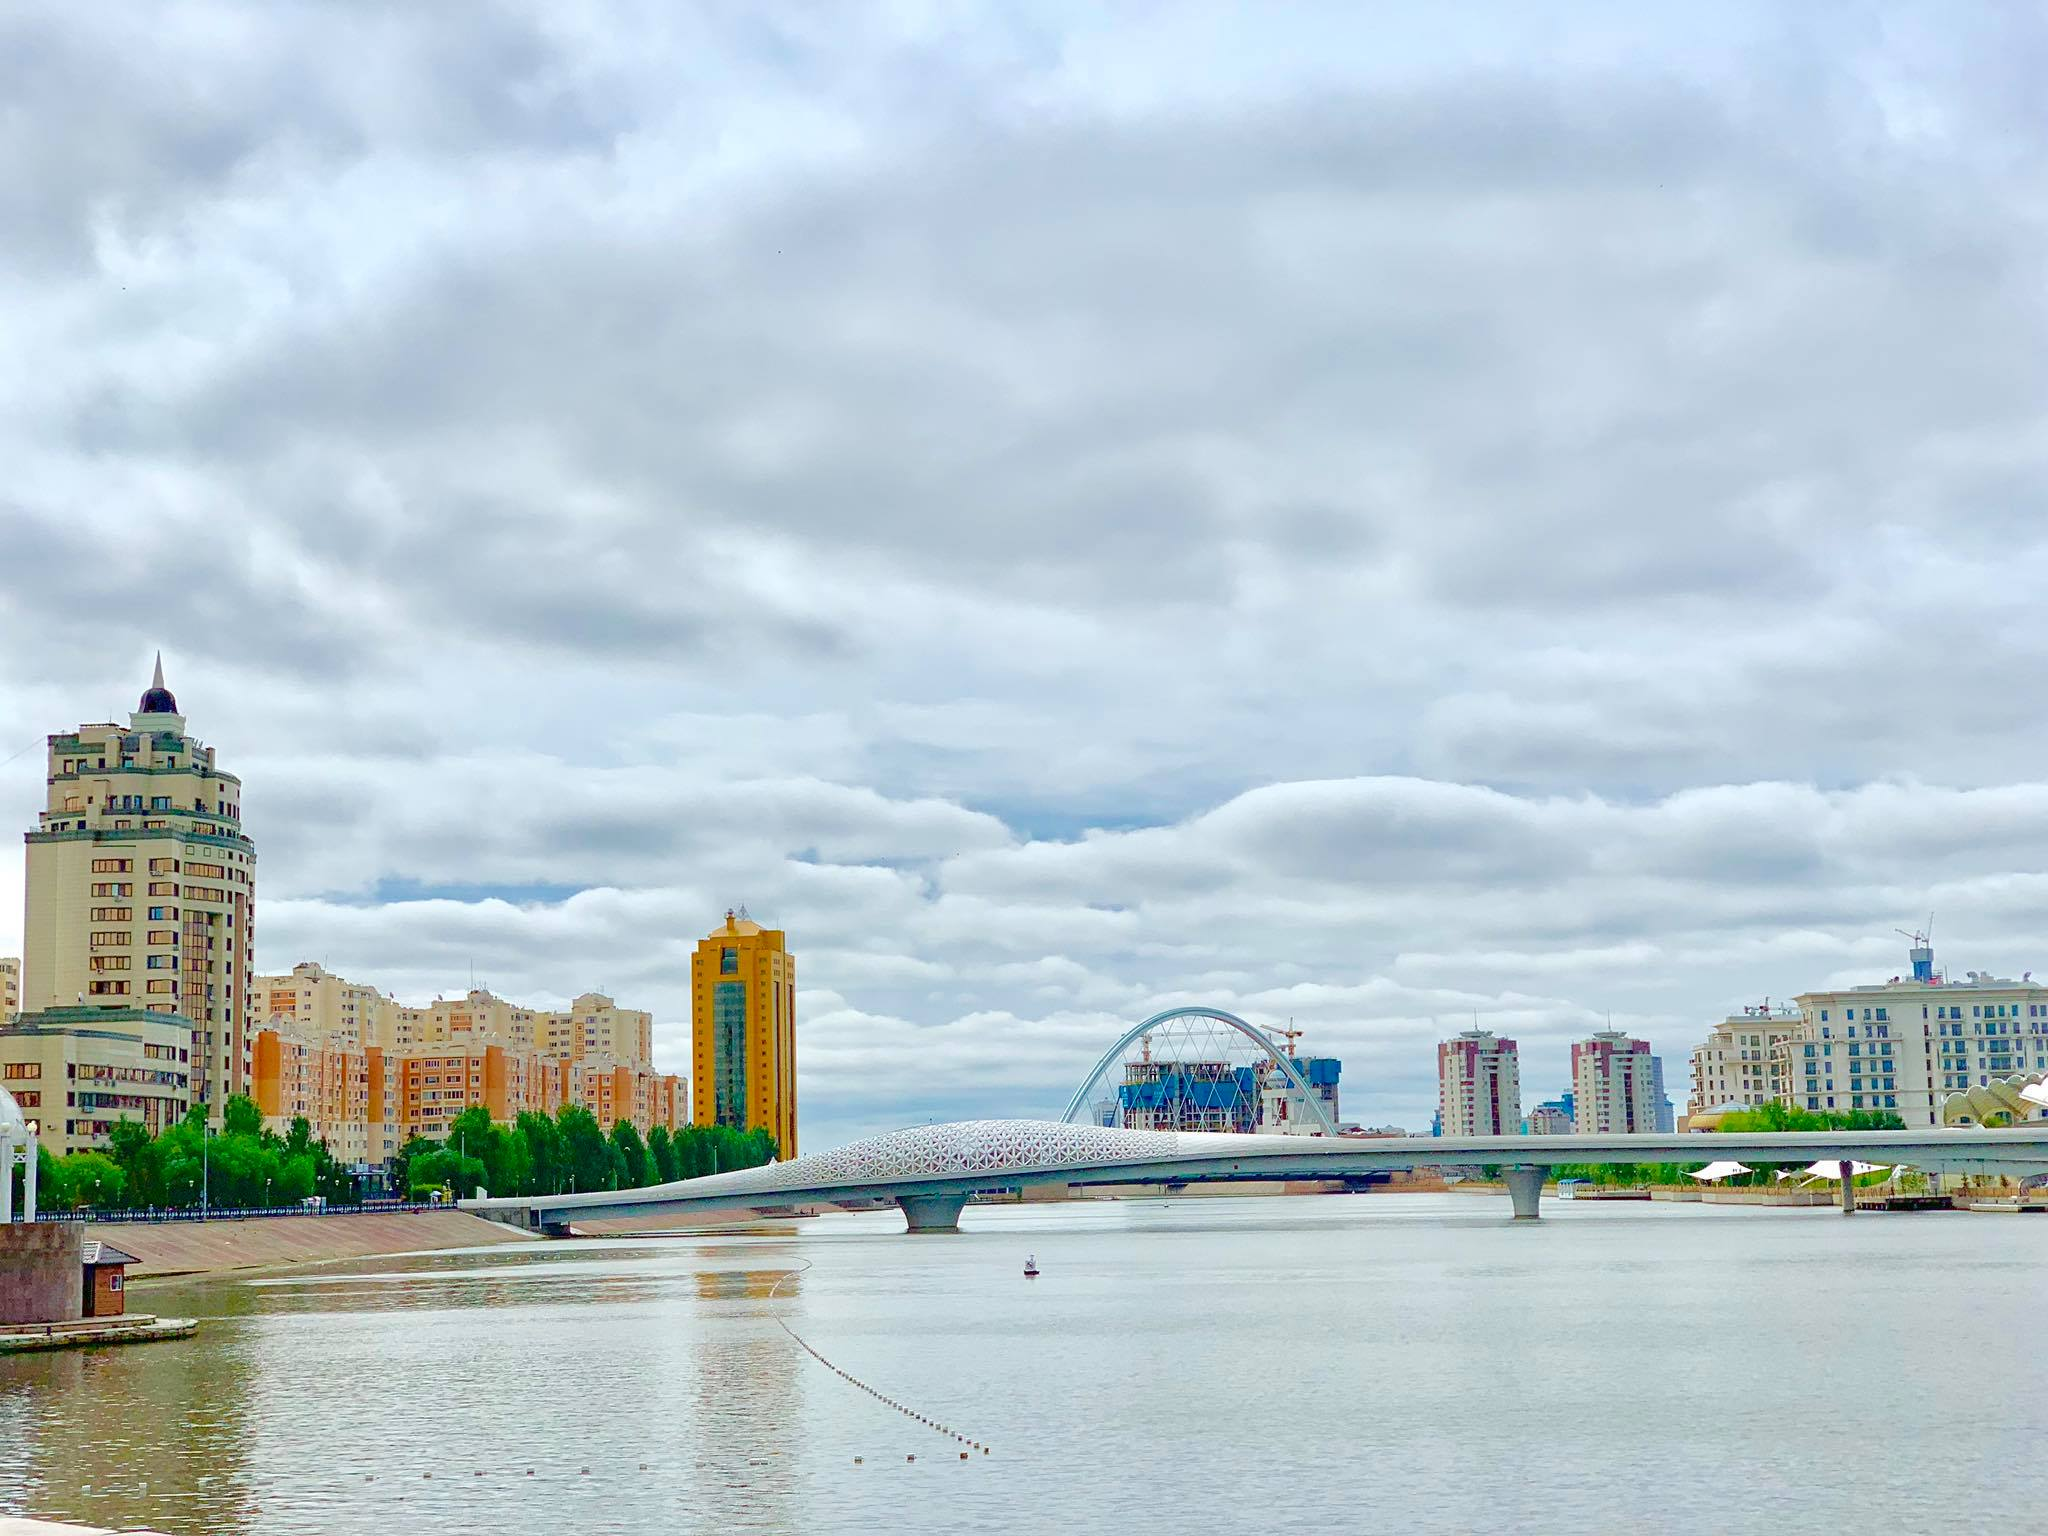 Kach Solo Travels in 2019 Nursultan  Astana - the City of the Future6.jpg